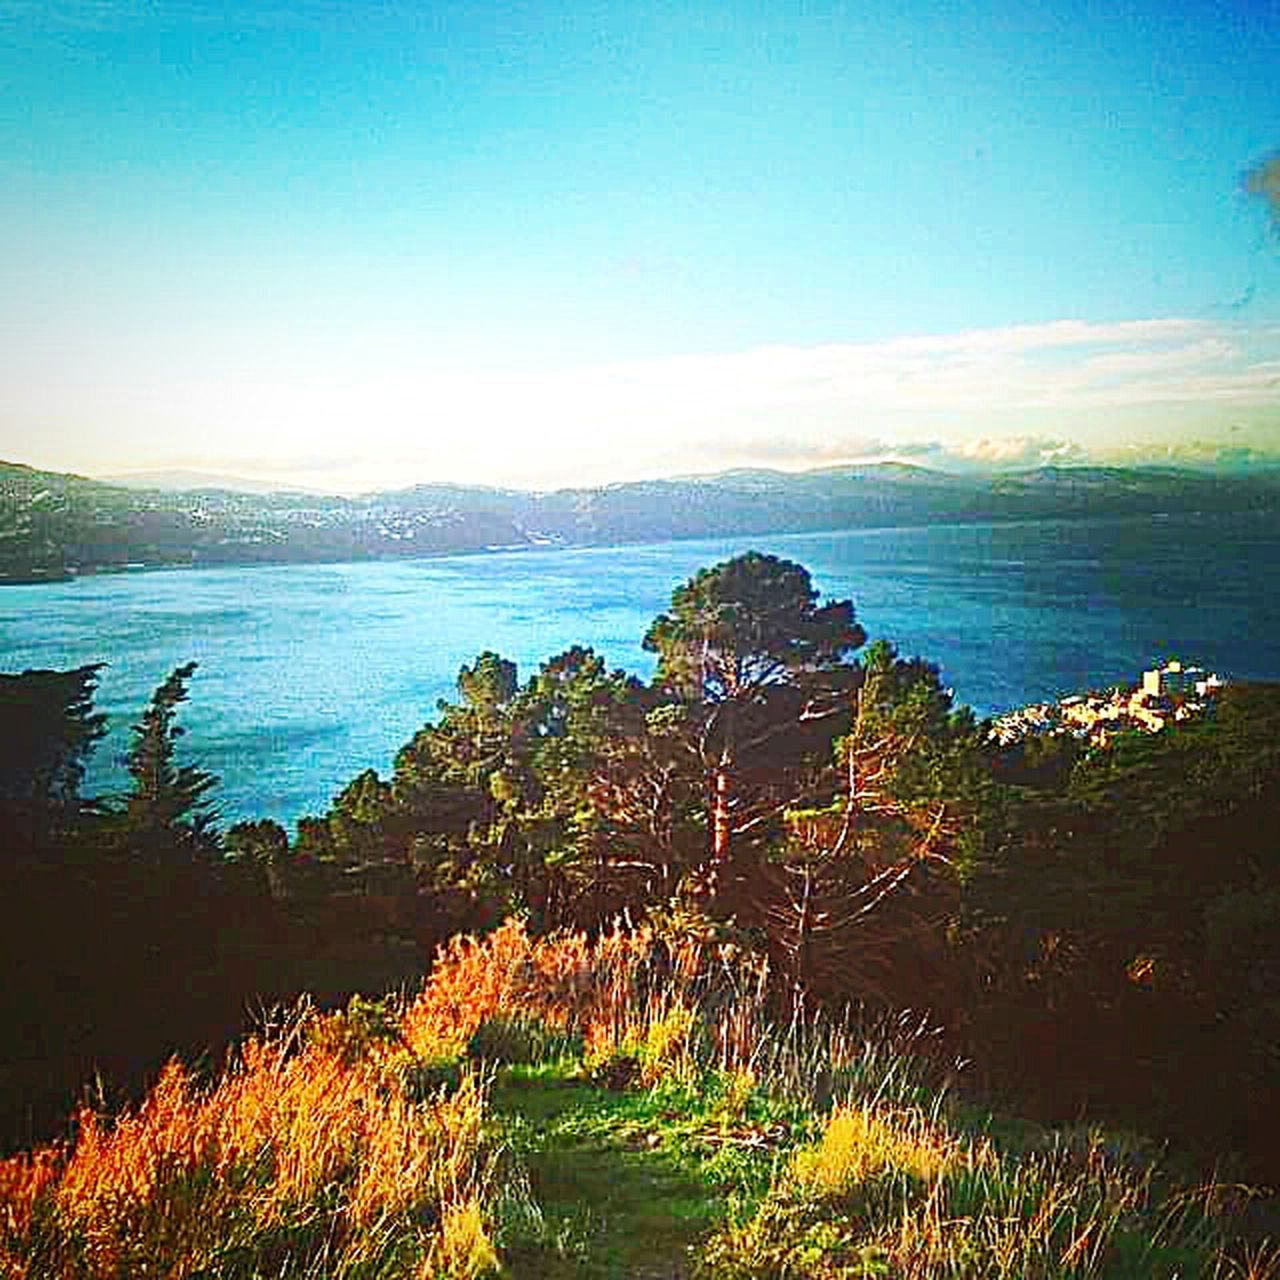 Wellington  Wellington Harbour Newzealand Newzealandscenary Panoramic View Photography Sky_collection Through My Eyes Photographer Life Through A Lens Taking Pictures From My Point Of View Enjoying The View Rainbow Colors Lake View Mountain_collection Taking Photos Clouds And Sky Climbing A Mountain Water_collection Trees Tree And Sky Panoramic Landscape Gopro Landscapes With WhiteWall